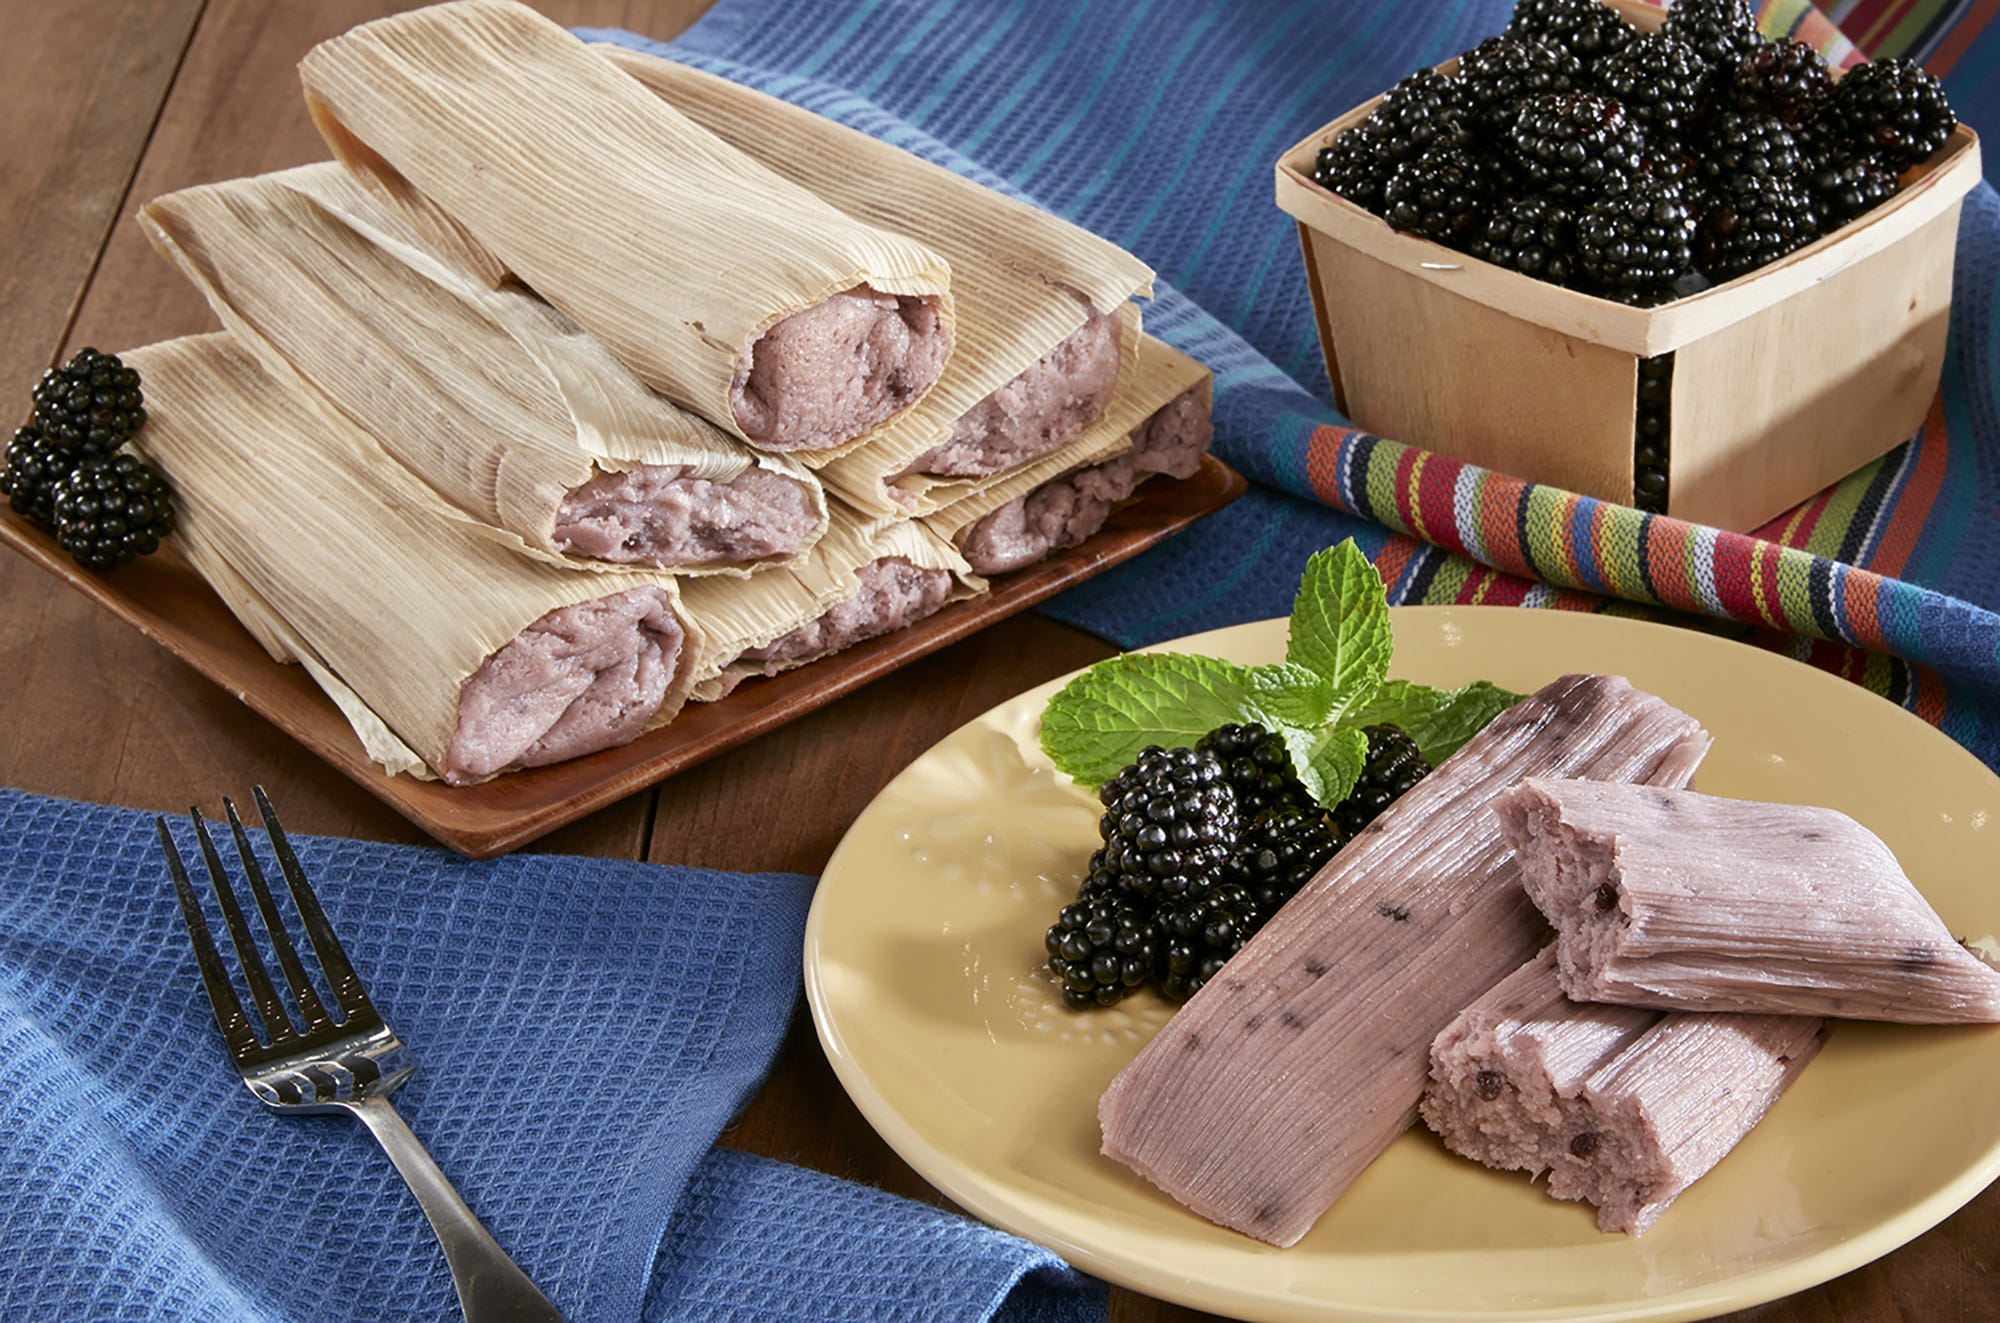 The blackberry tamales at Food City.